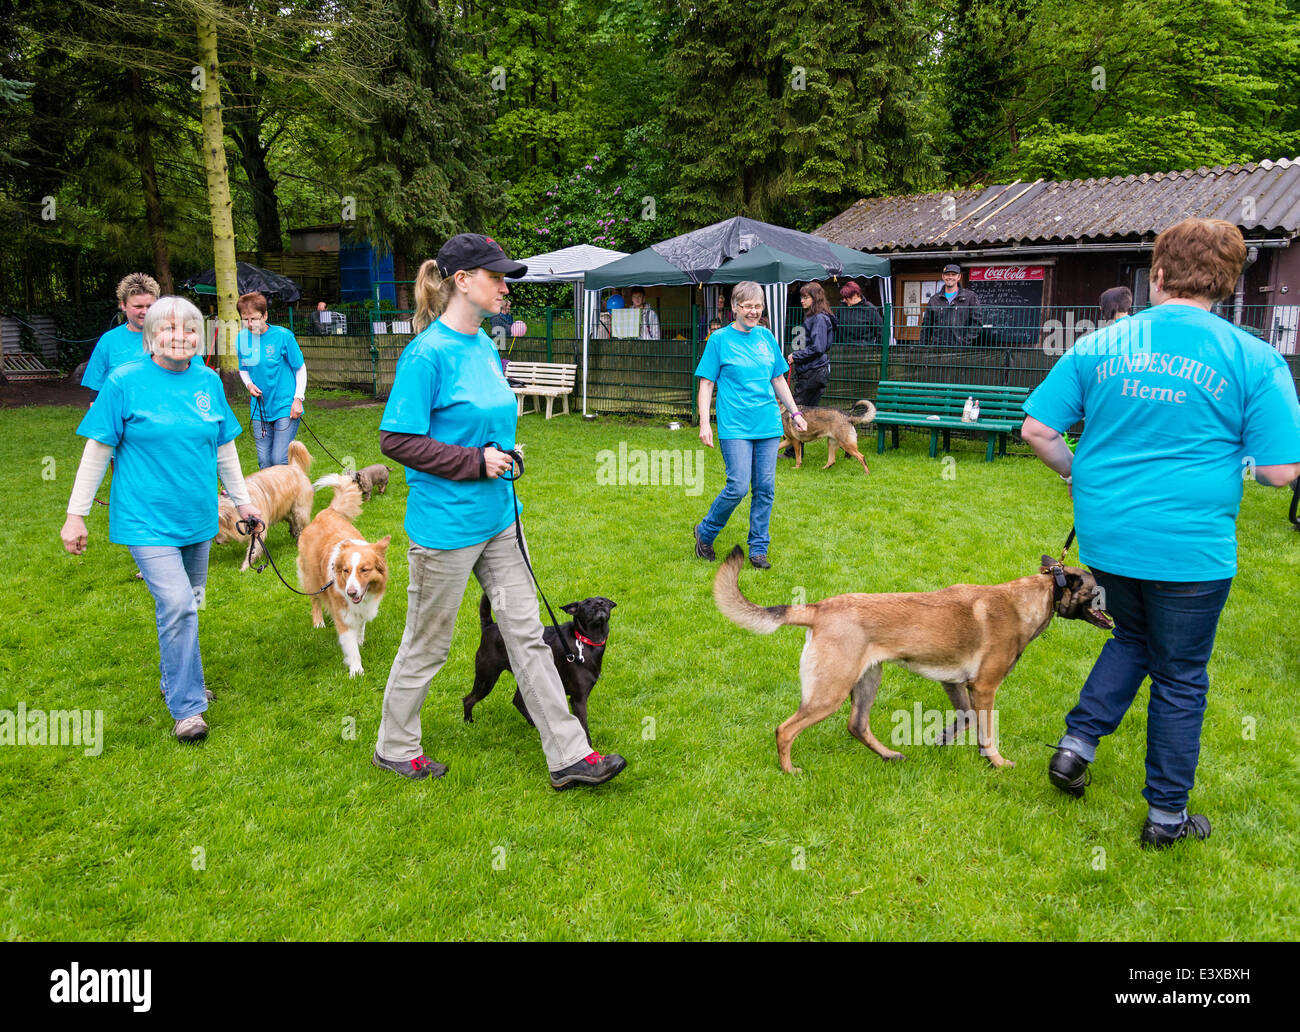 A dog trainer (in the center) advises dog owners how to handle their pets at a dog obedience school . - Stock Image